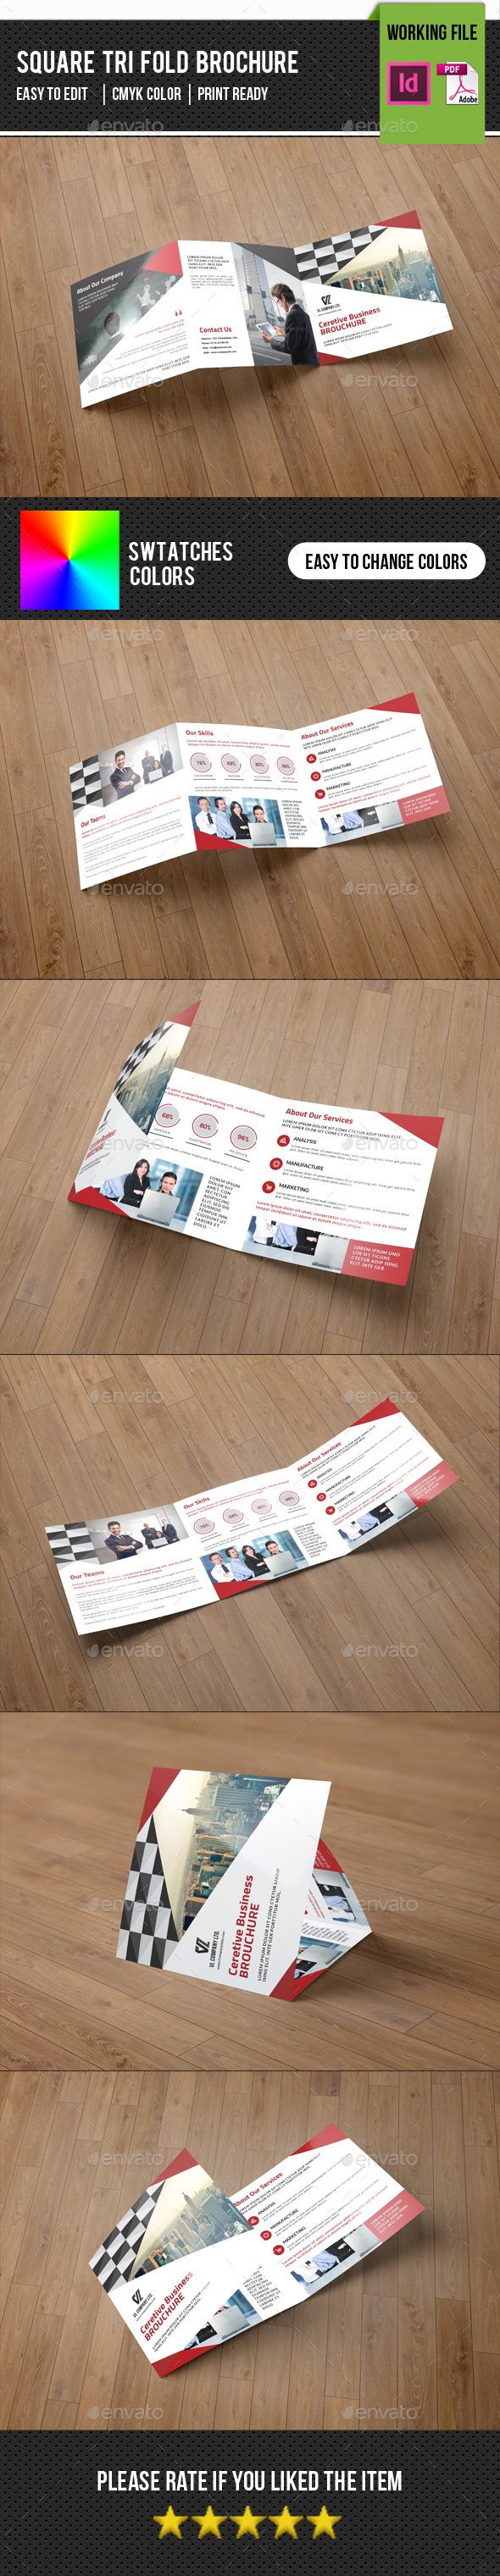 Corporate Square Trifold Brochure-V79 - Corporate Brochures